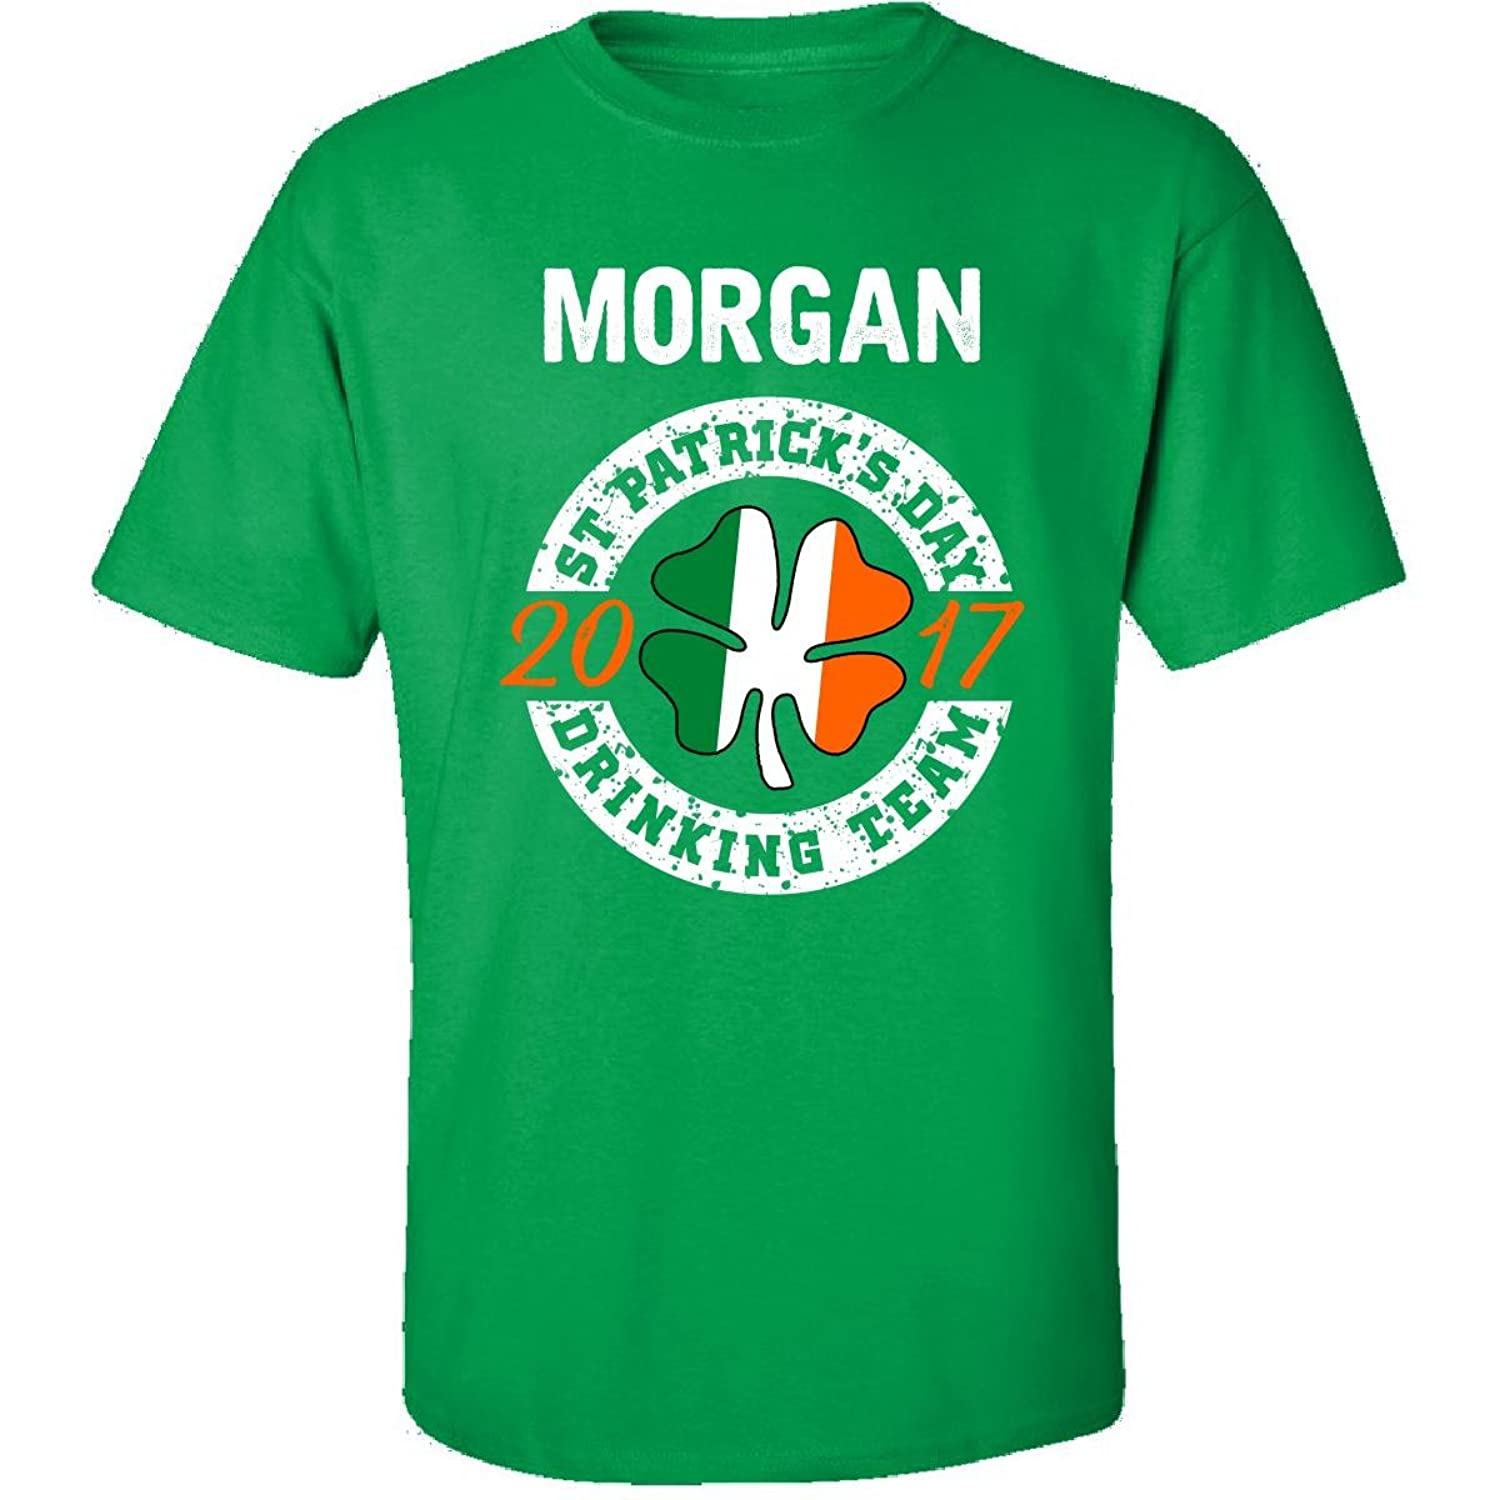 Morgan St Patricks Day 2017 Drinking Team Irish - Adult Shirt